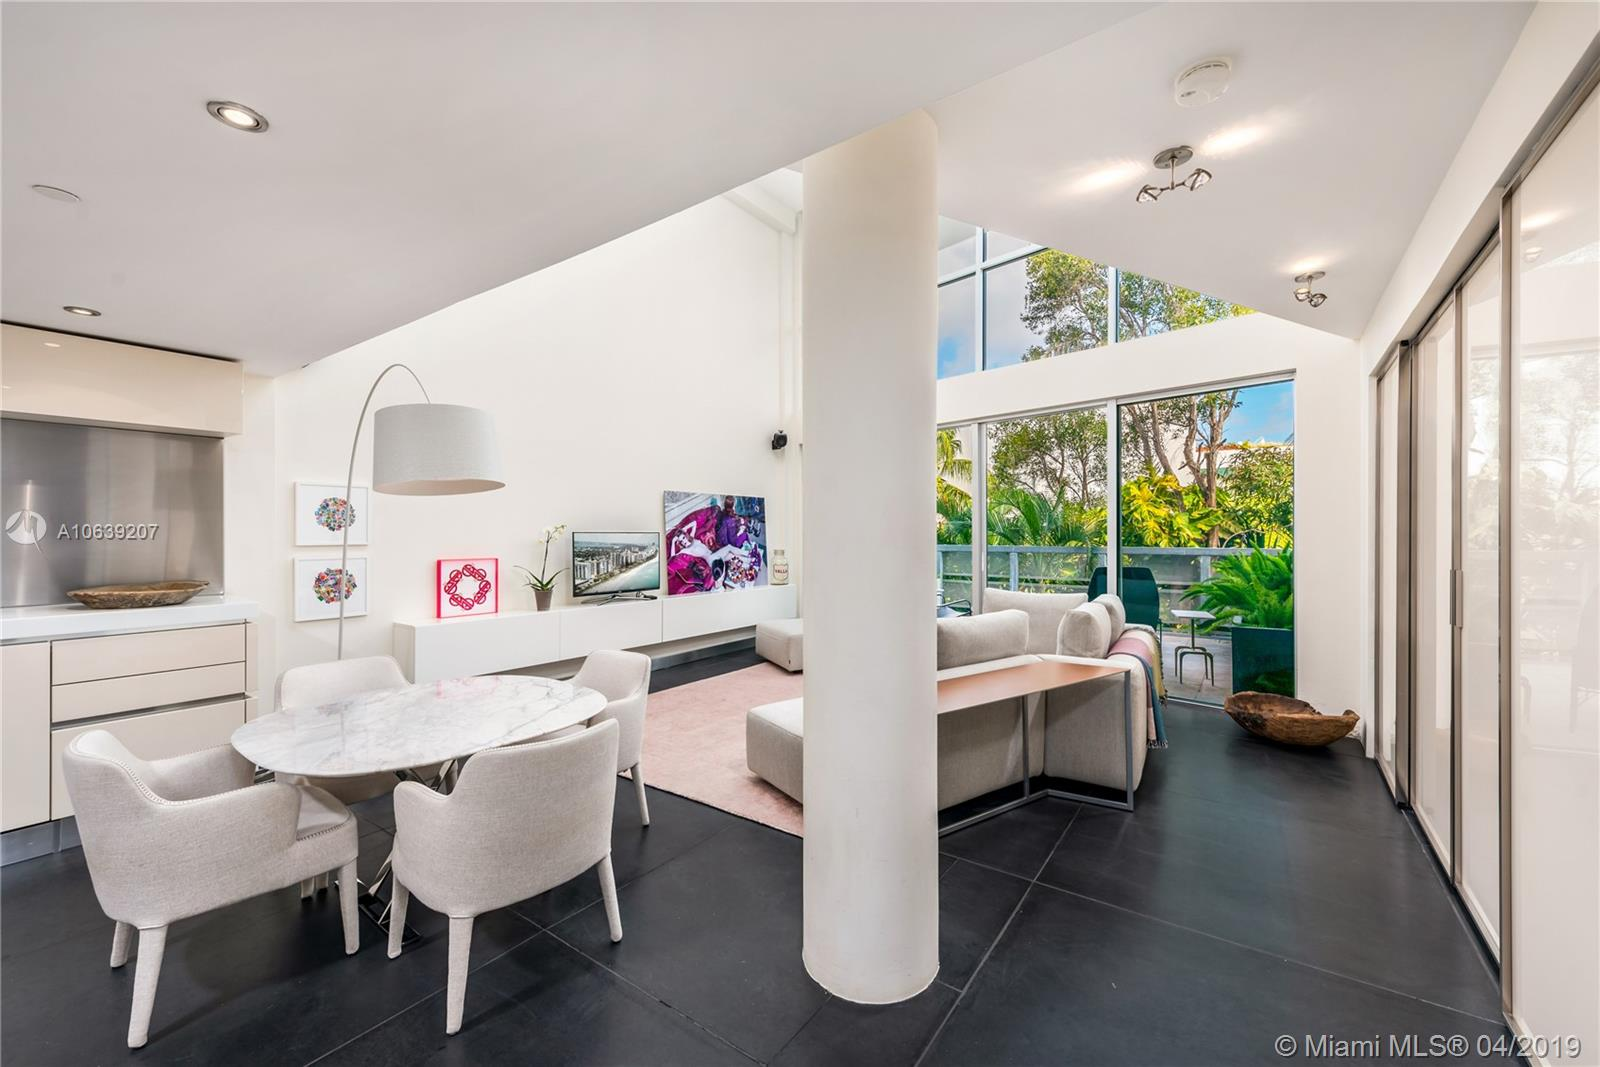 221 Jefferson Ave, 13 - Miami Beach, Florida